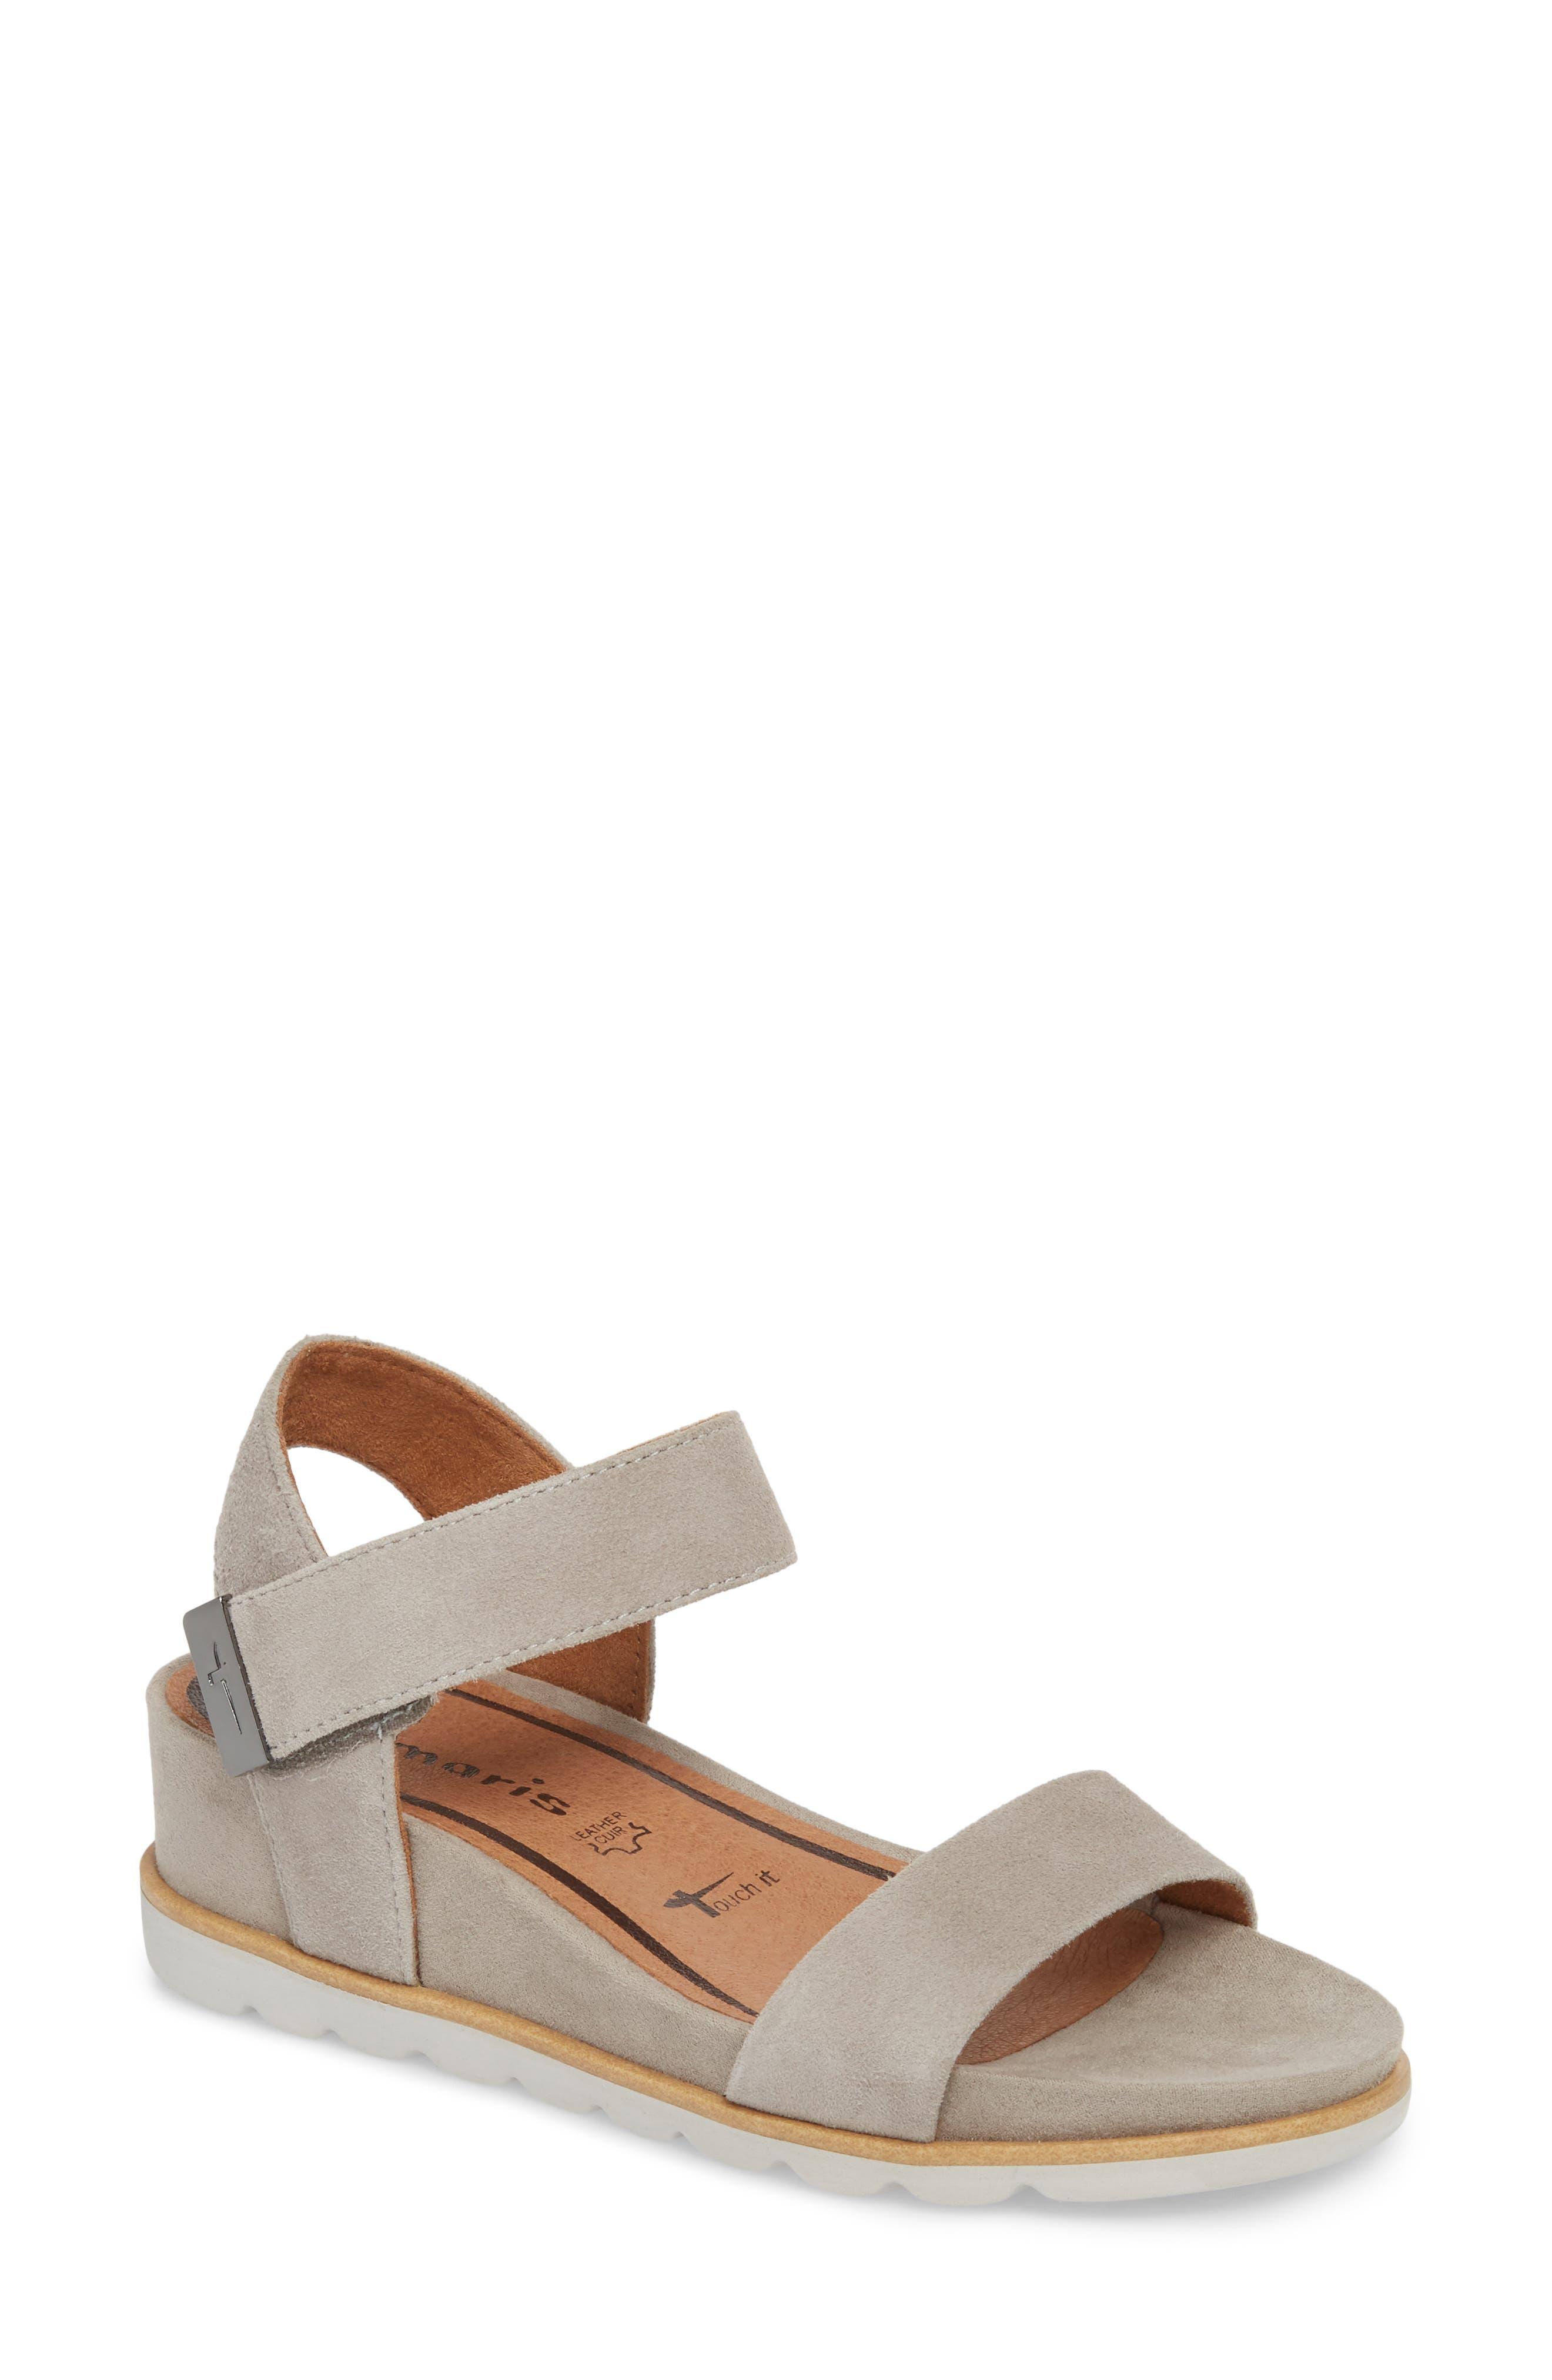 Cory Wedge Sandal,                             Main thumbnail 1, color,                             Cloud Suede